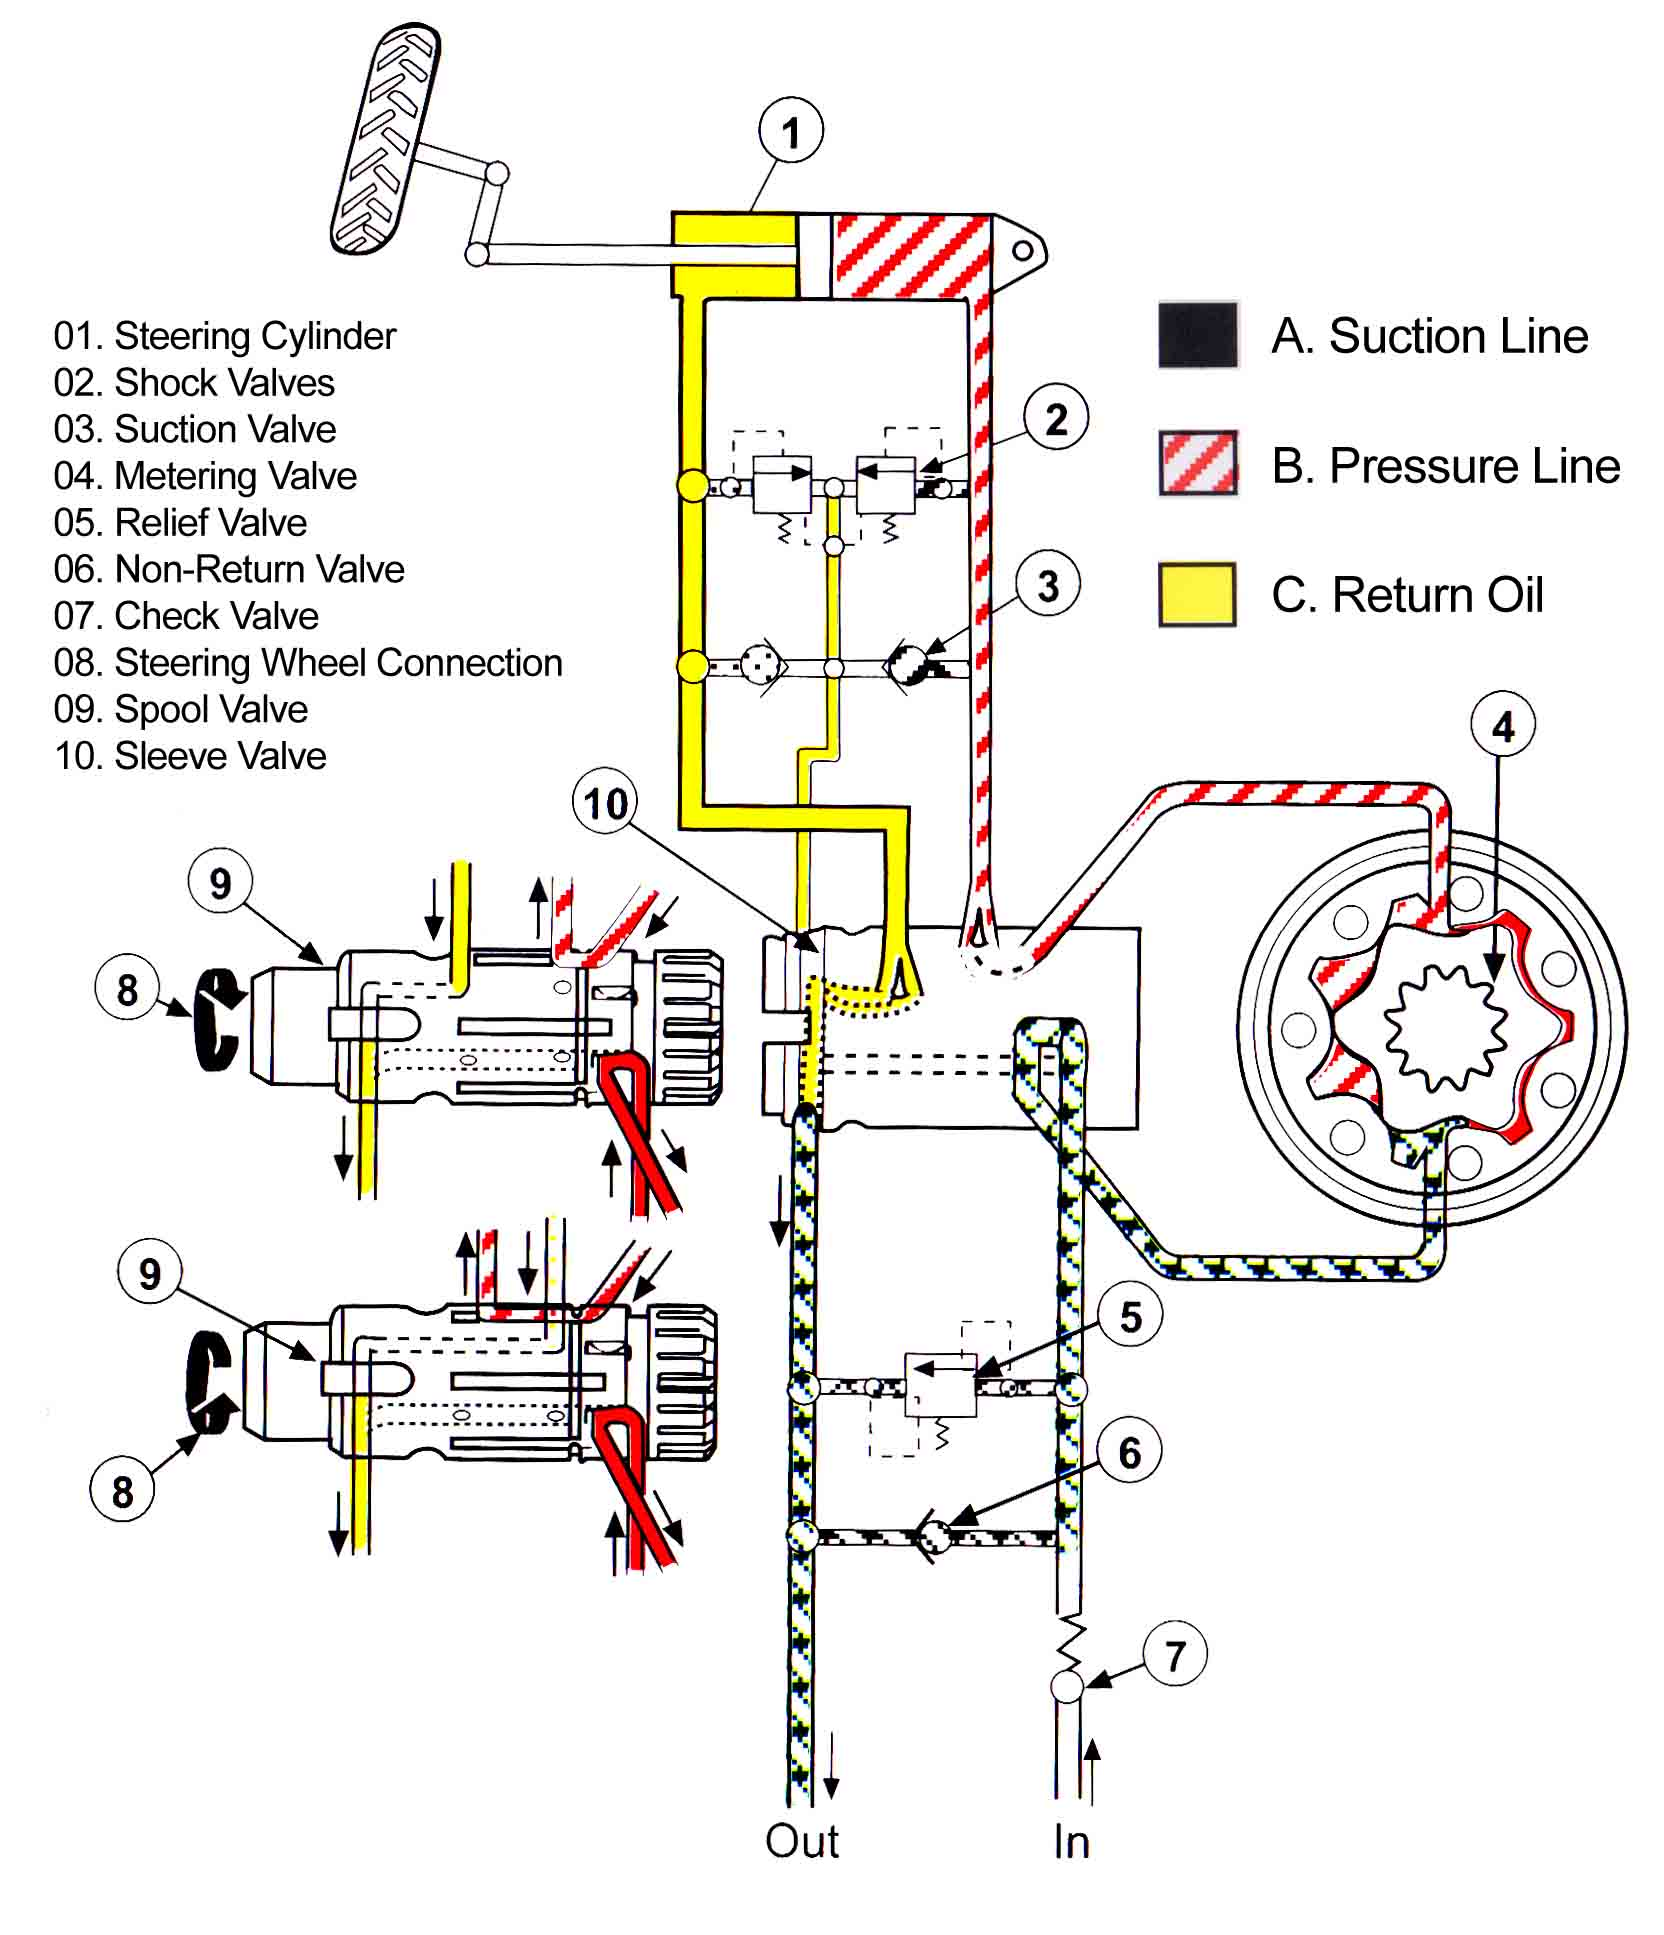 Wiring Diagram For Tc35 Auto Electrical New Holland 5610 Schematic Get Free Image